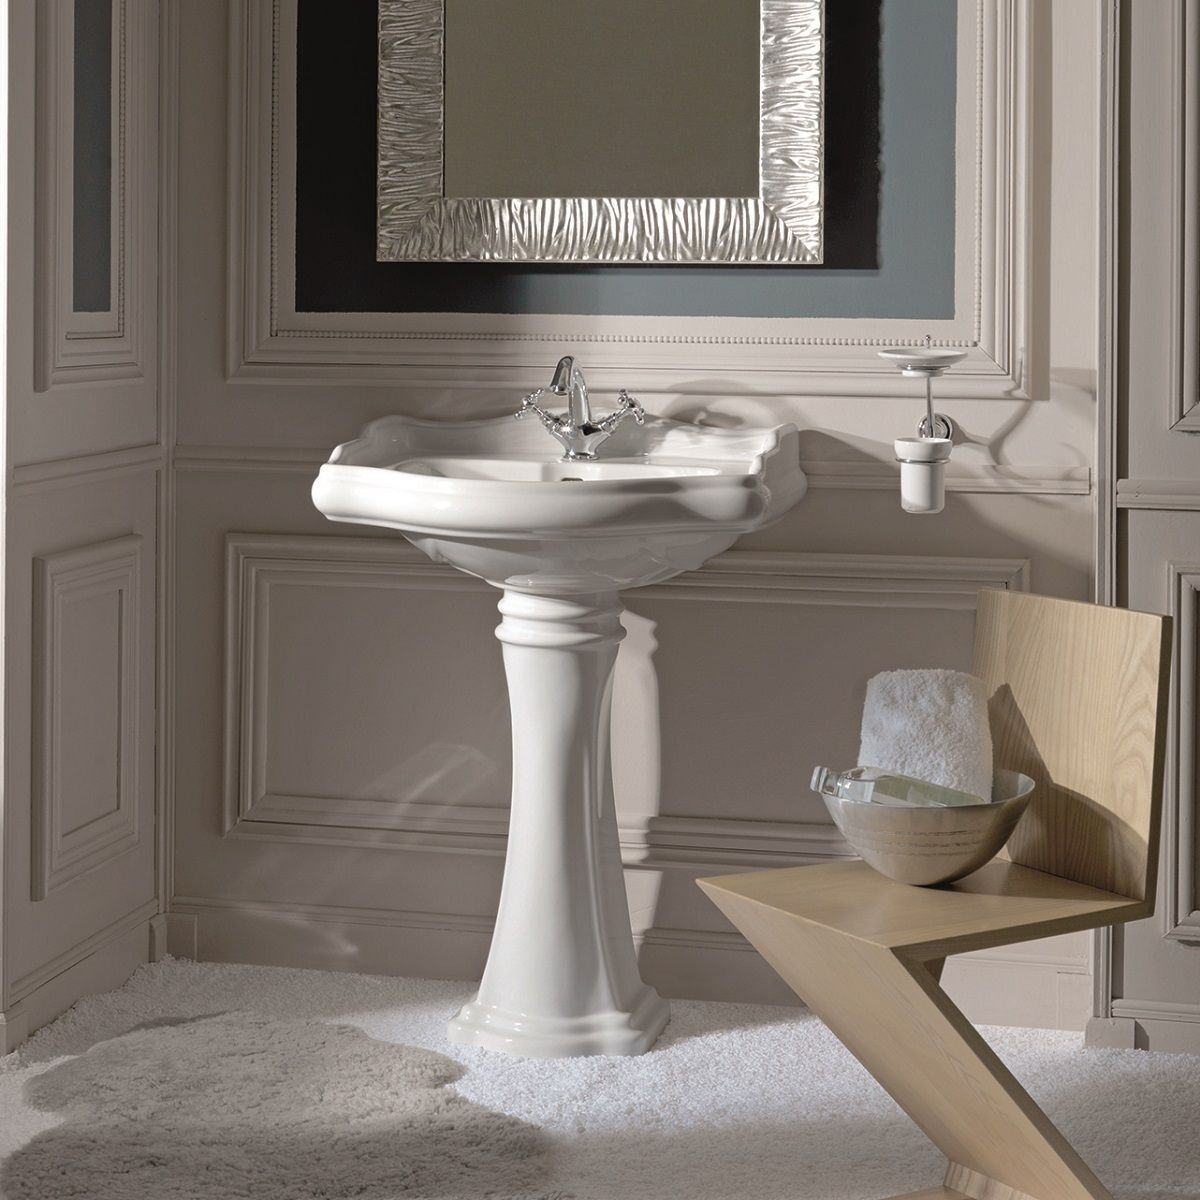 /wp/wp-content/uploads/2020/03/ws-bath-collections-retro-1045-1070-pedestal-bathroom-sink-21-7-x-18-3.jpg